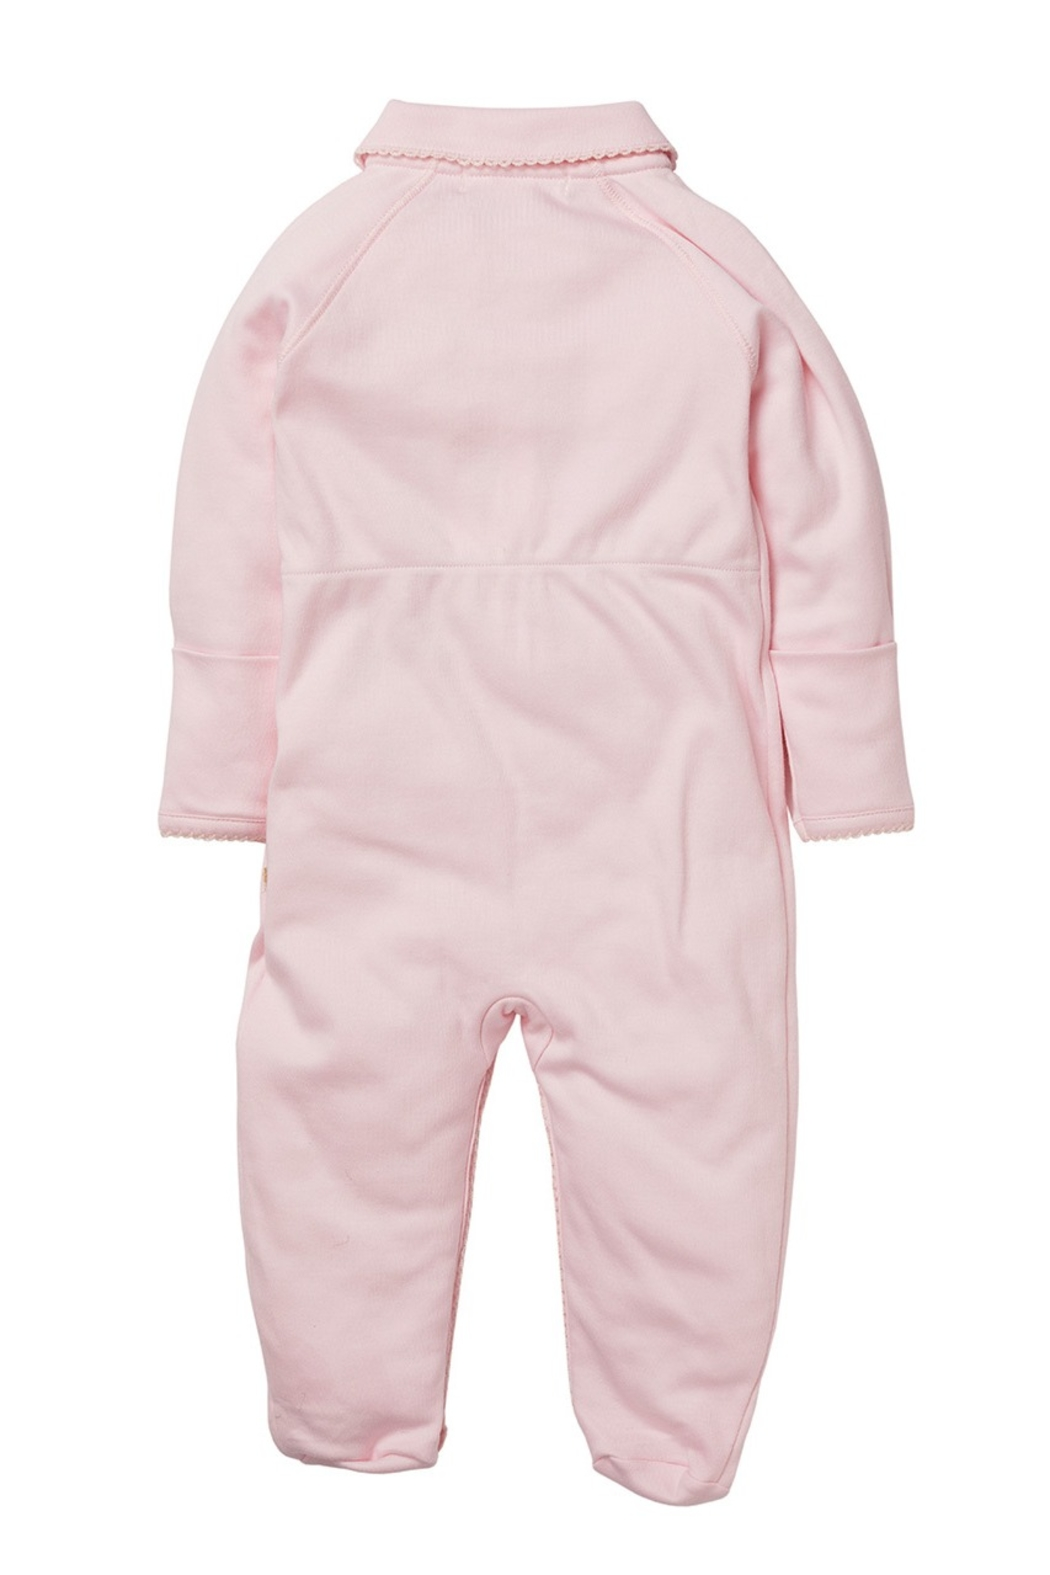 Marie Chantal Angel Wing Onesie With Mittens - Front Full Image